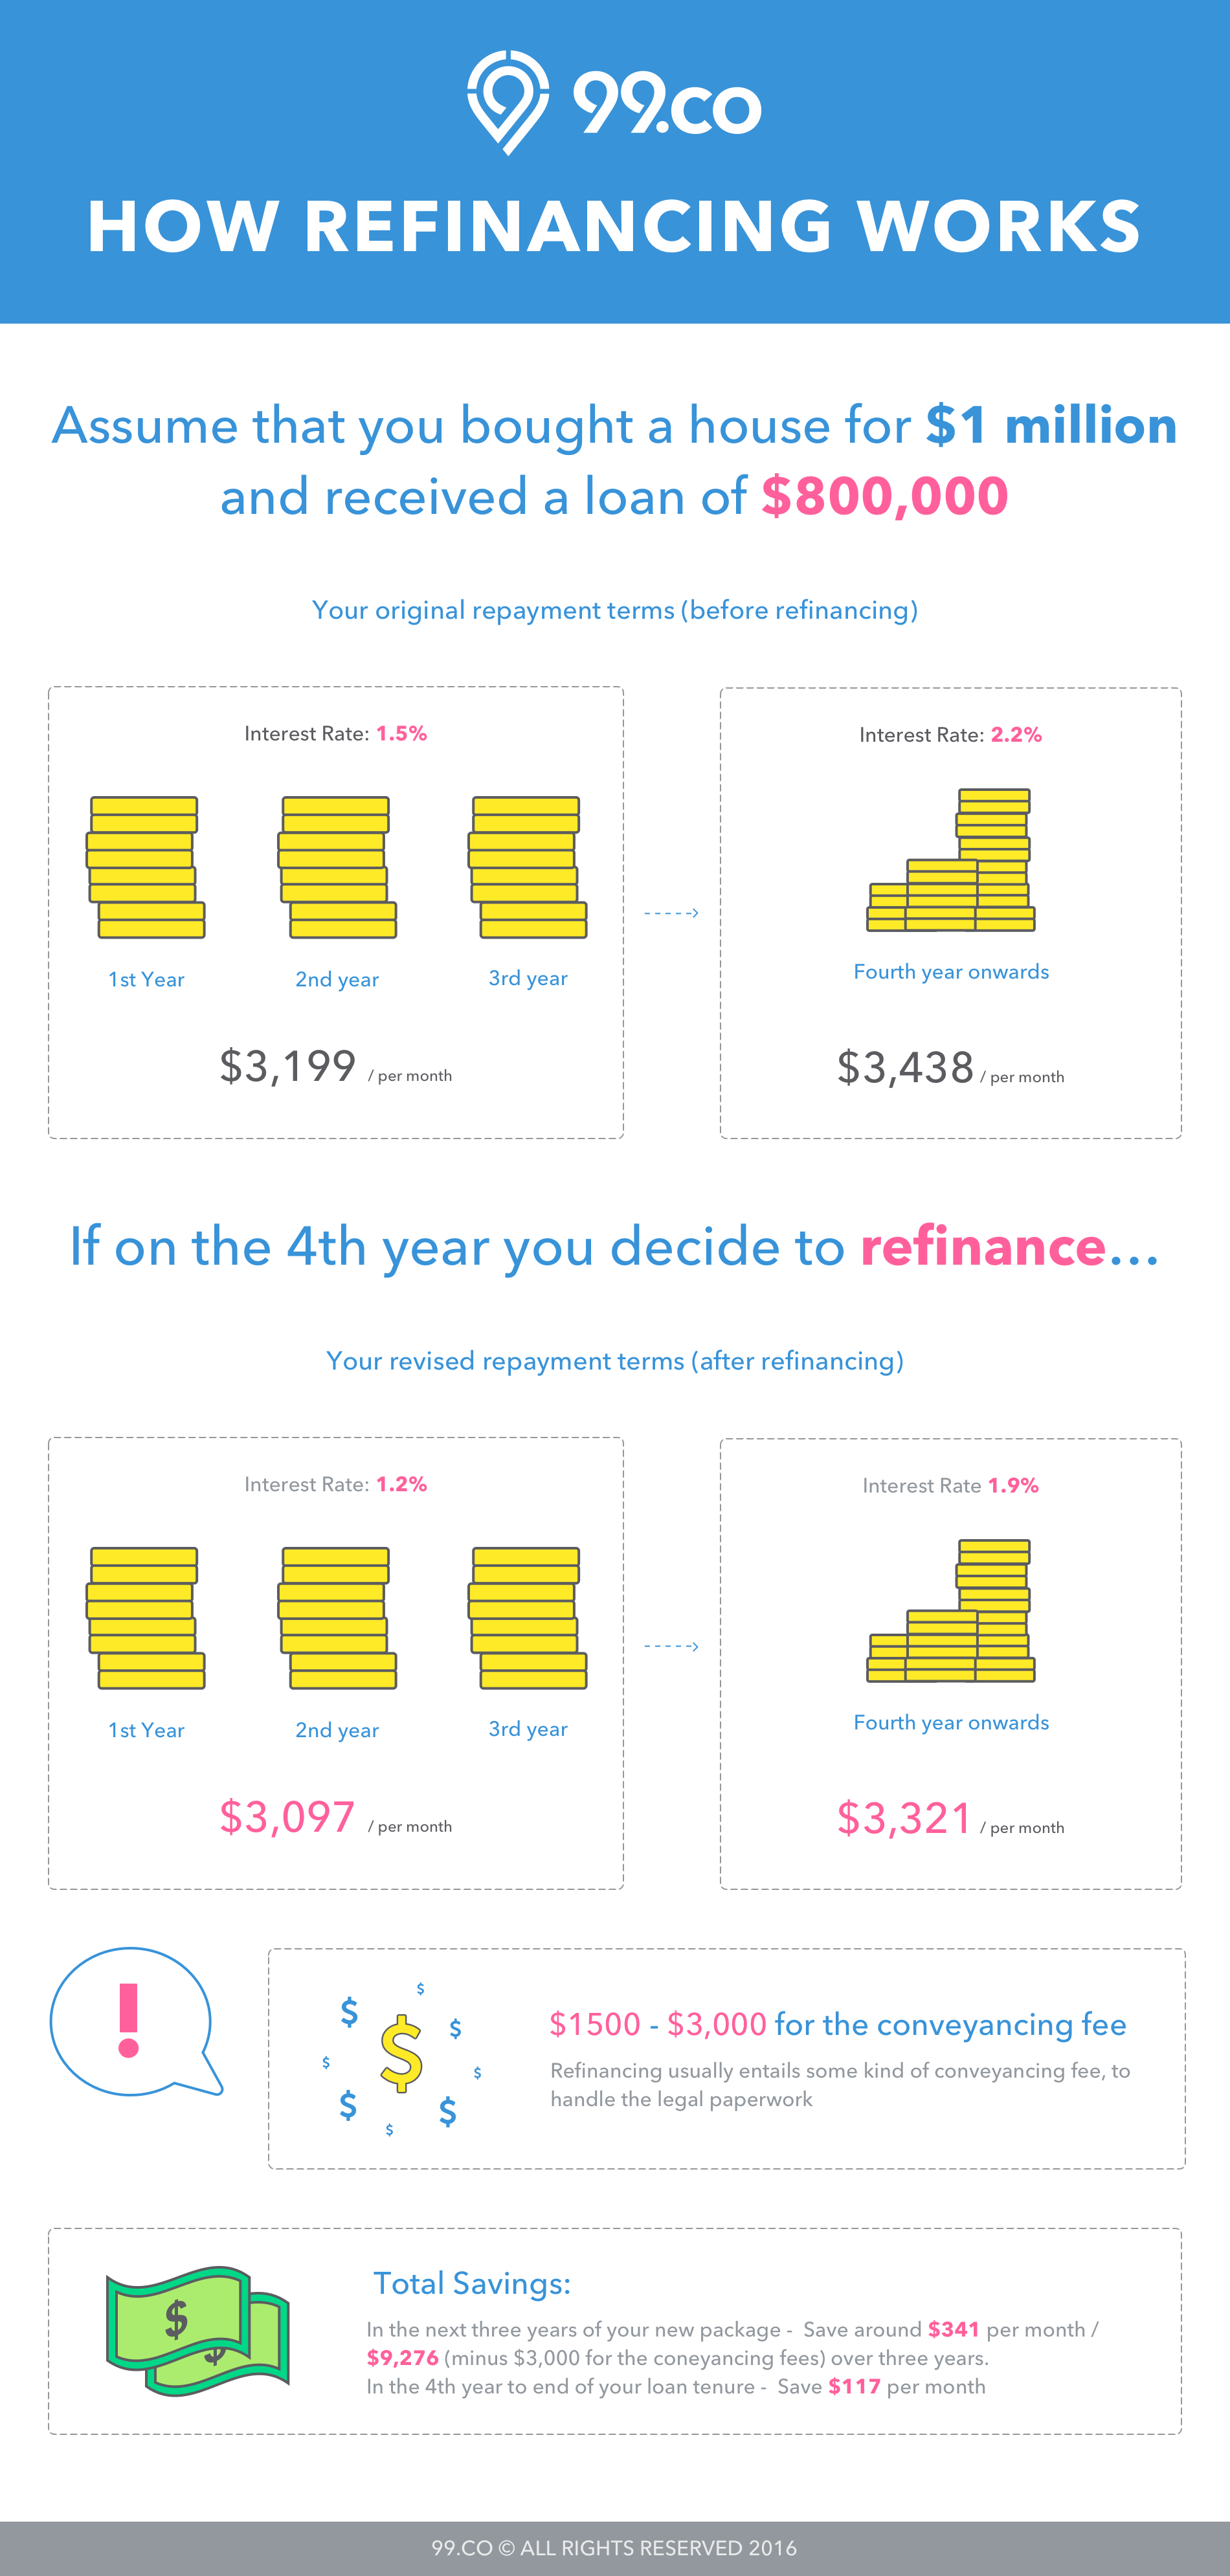 When and why should you do mortgage refinancing